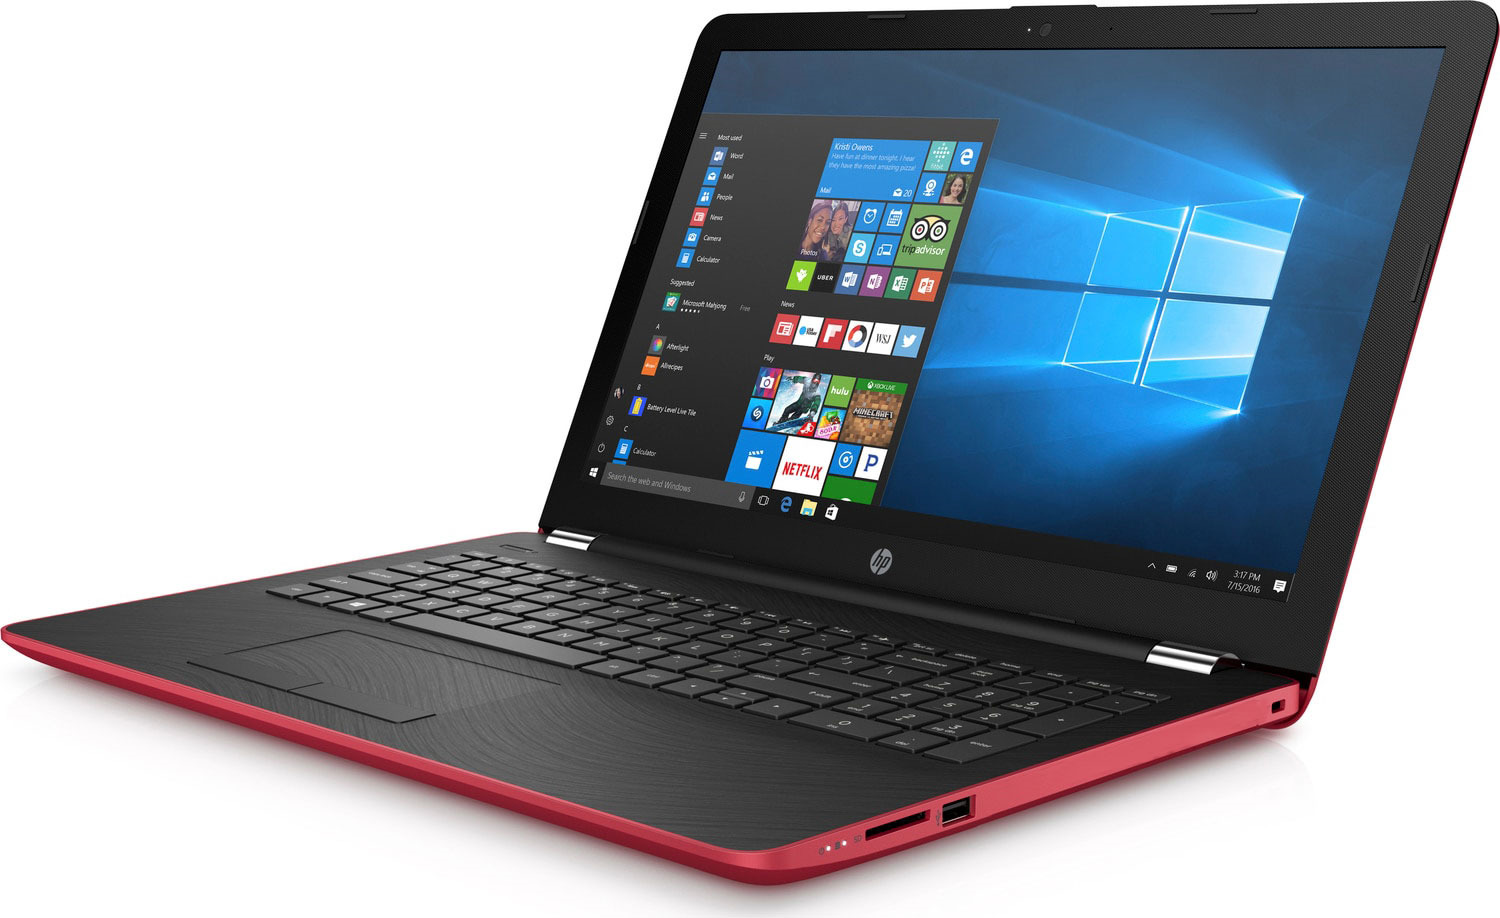 15.6 Ноутбук HP 15-bs593ur 2PV94EA, красный ноутбук hp 15 bs038ur pentium n3710 1600mhz 4gb 500gb 15 6 hd int intel hd no odd win10